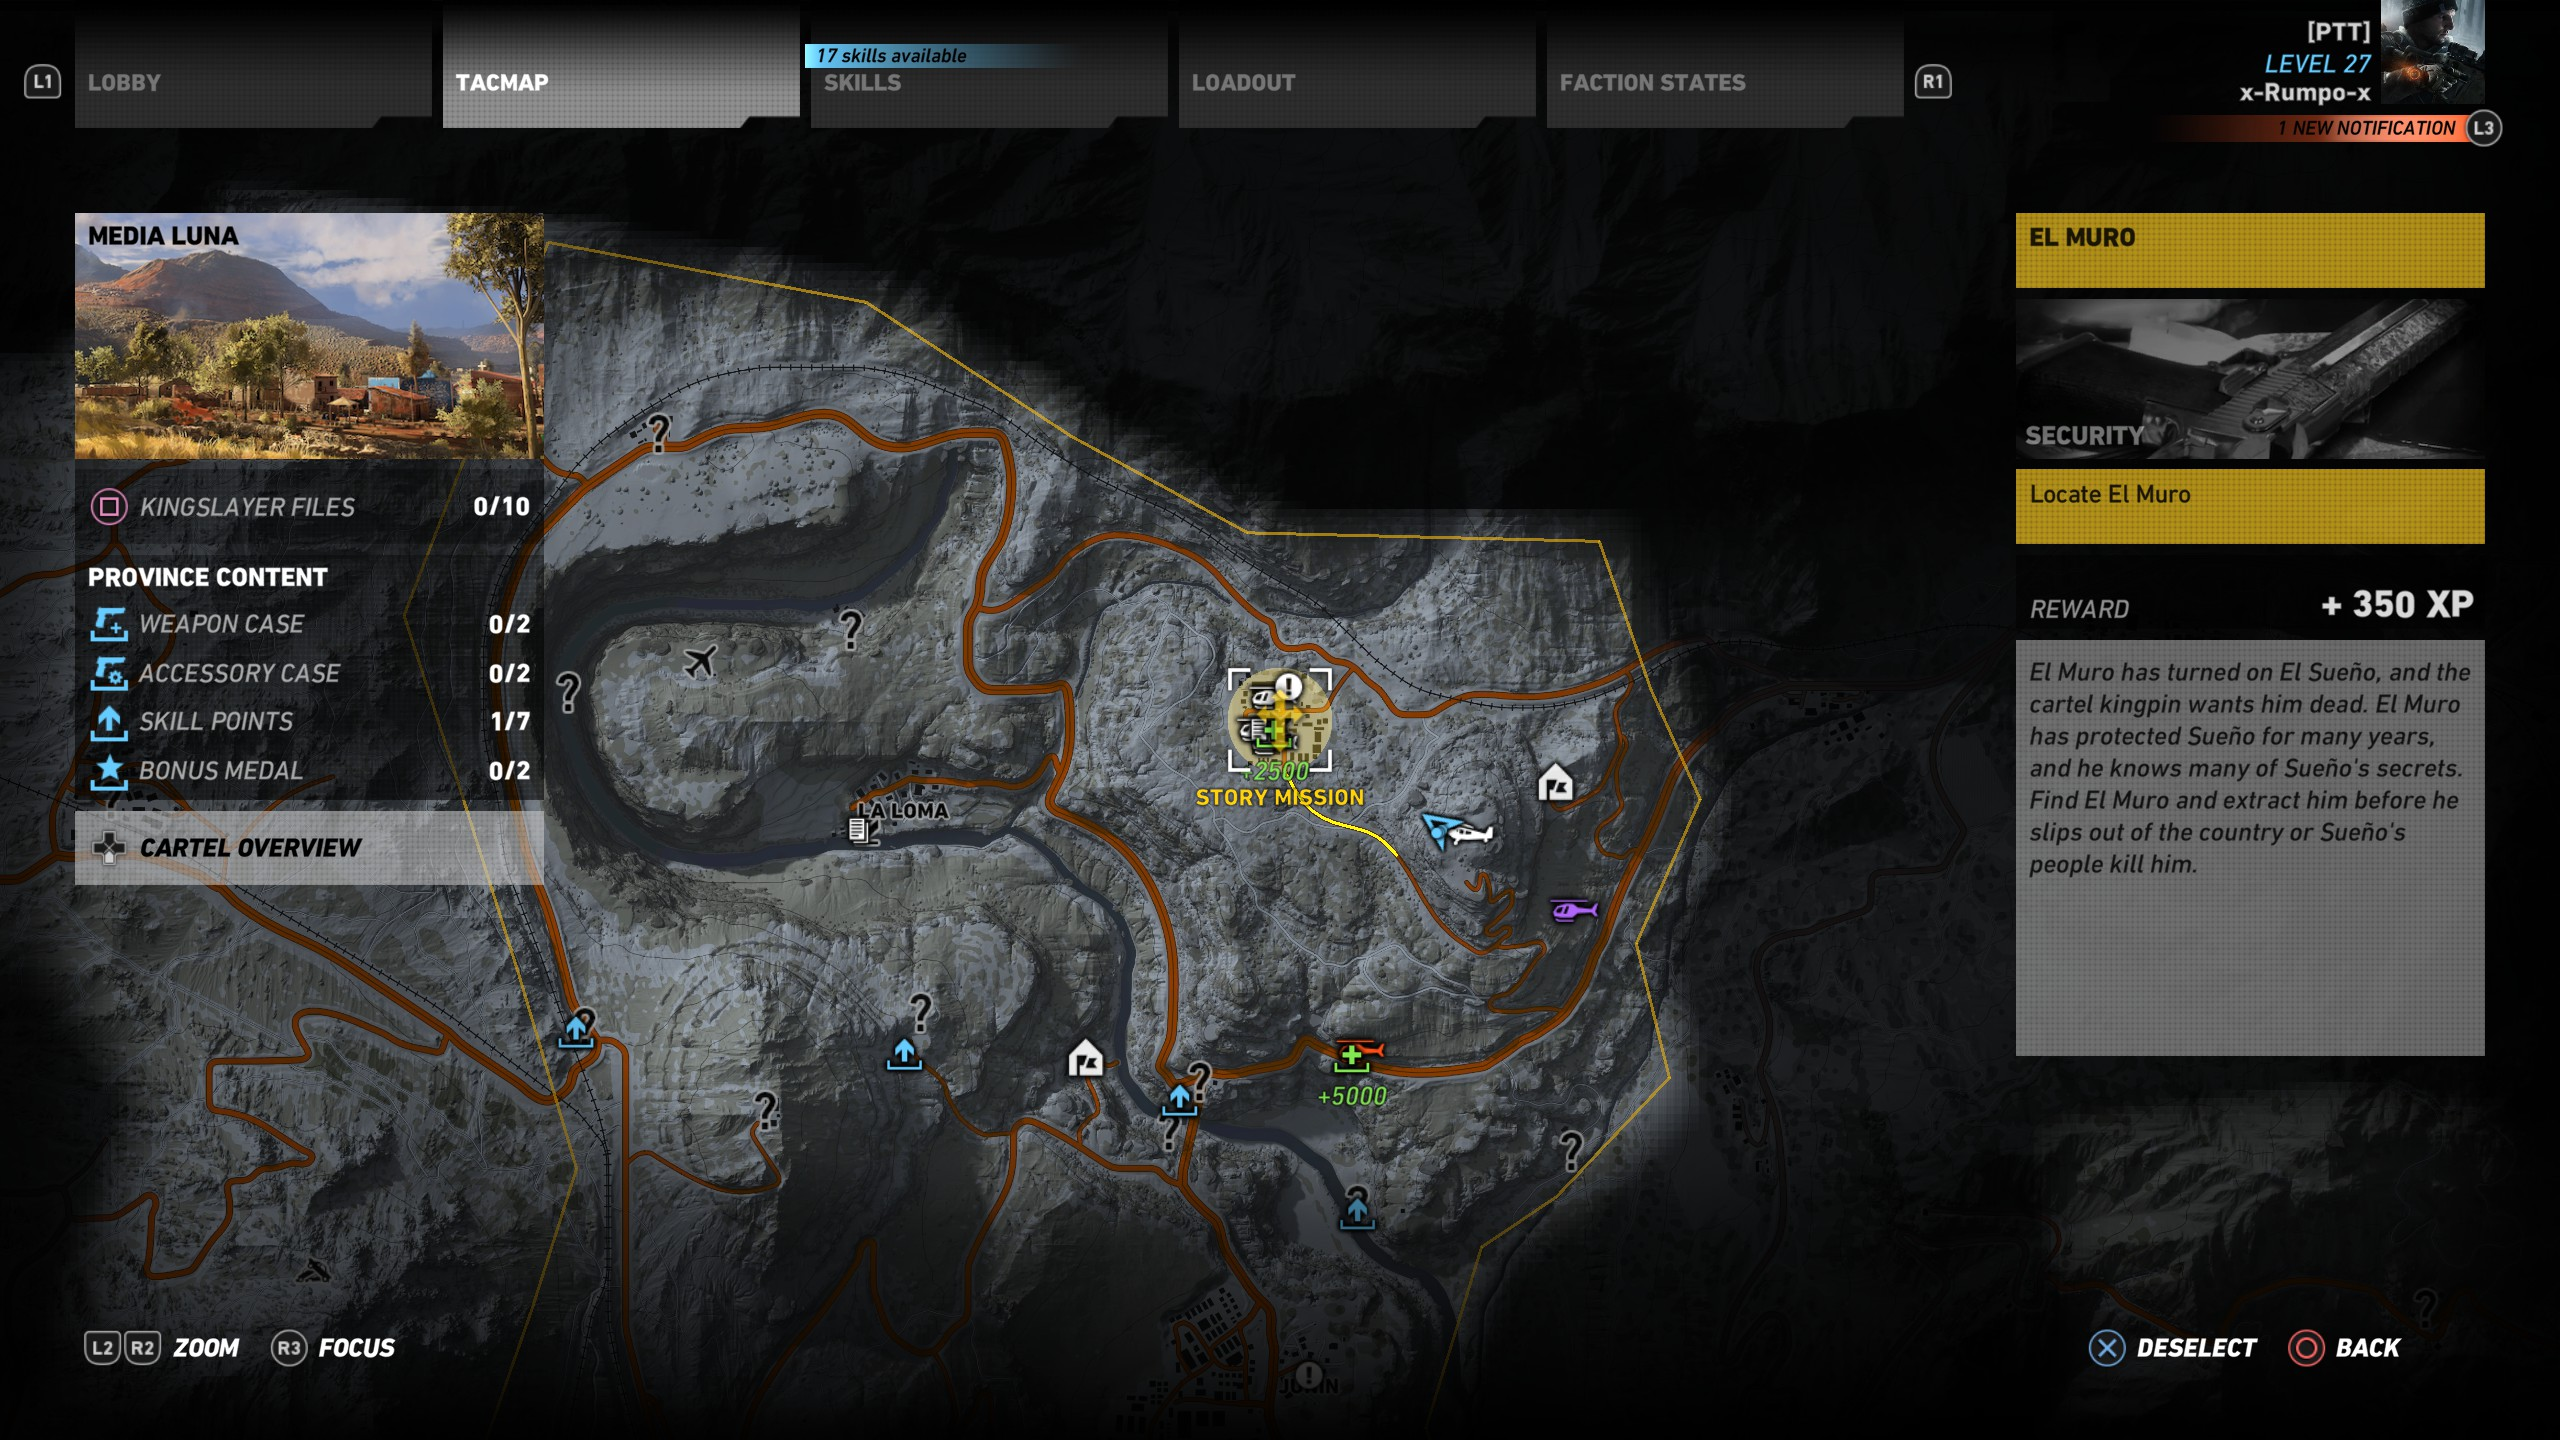 This is the location of El Muro in Ghost Recon Wildlands